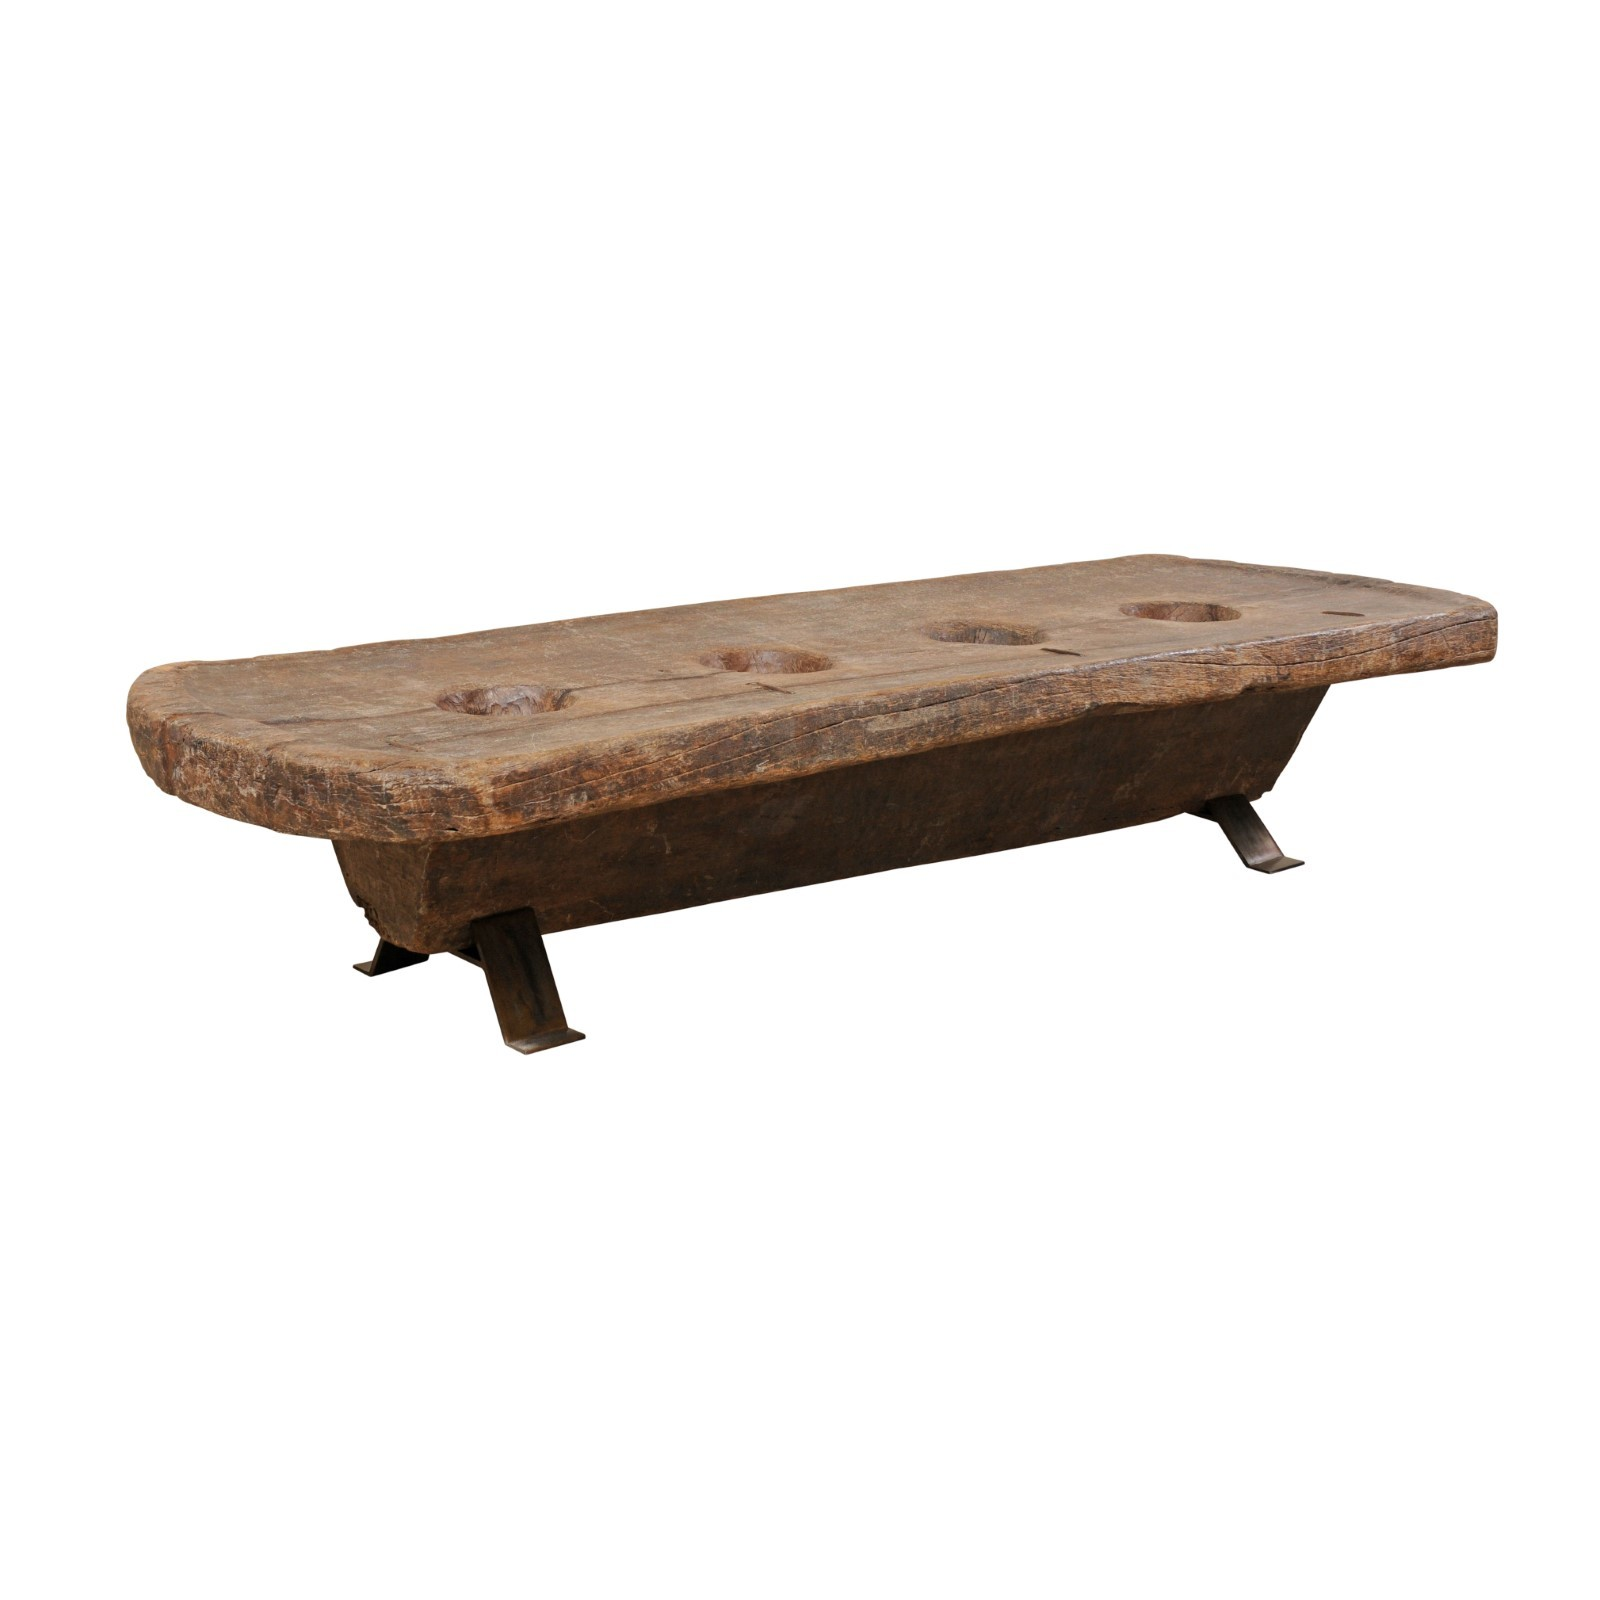 Naga Tribe Grain Grinding Coffee Table